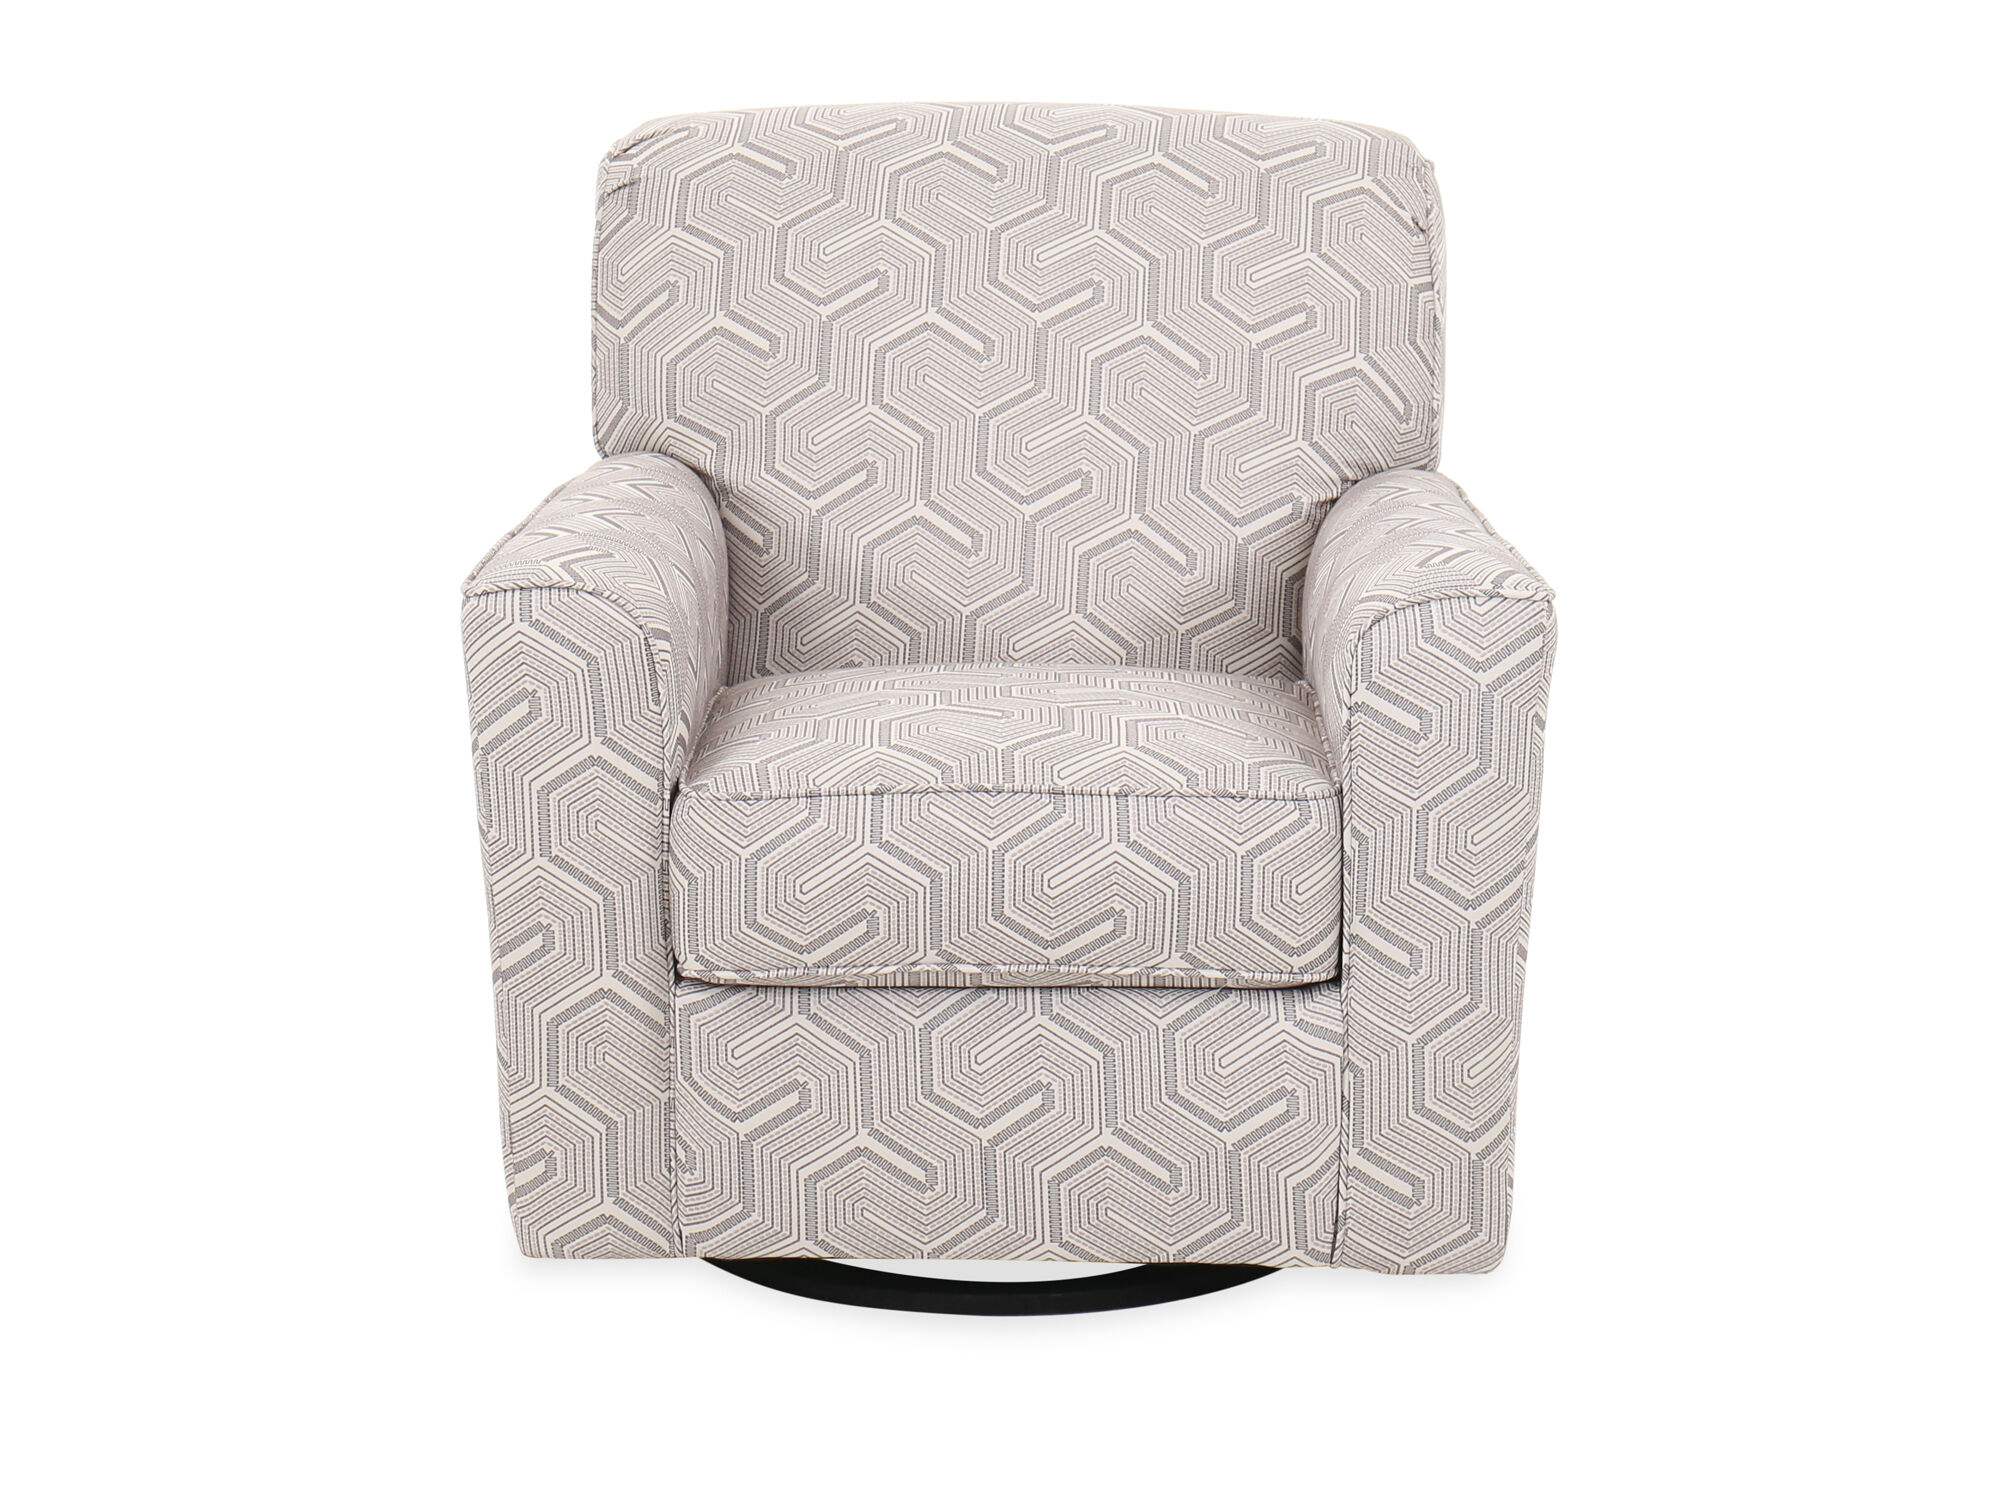 Geometric Patterned Contemporary 36 Swivel Accent Chair In Graphite Mathis Brothers Furniture